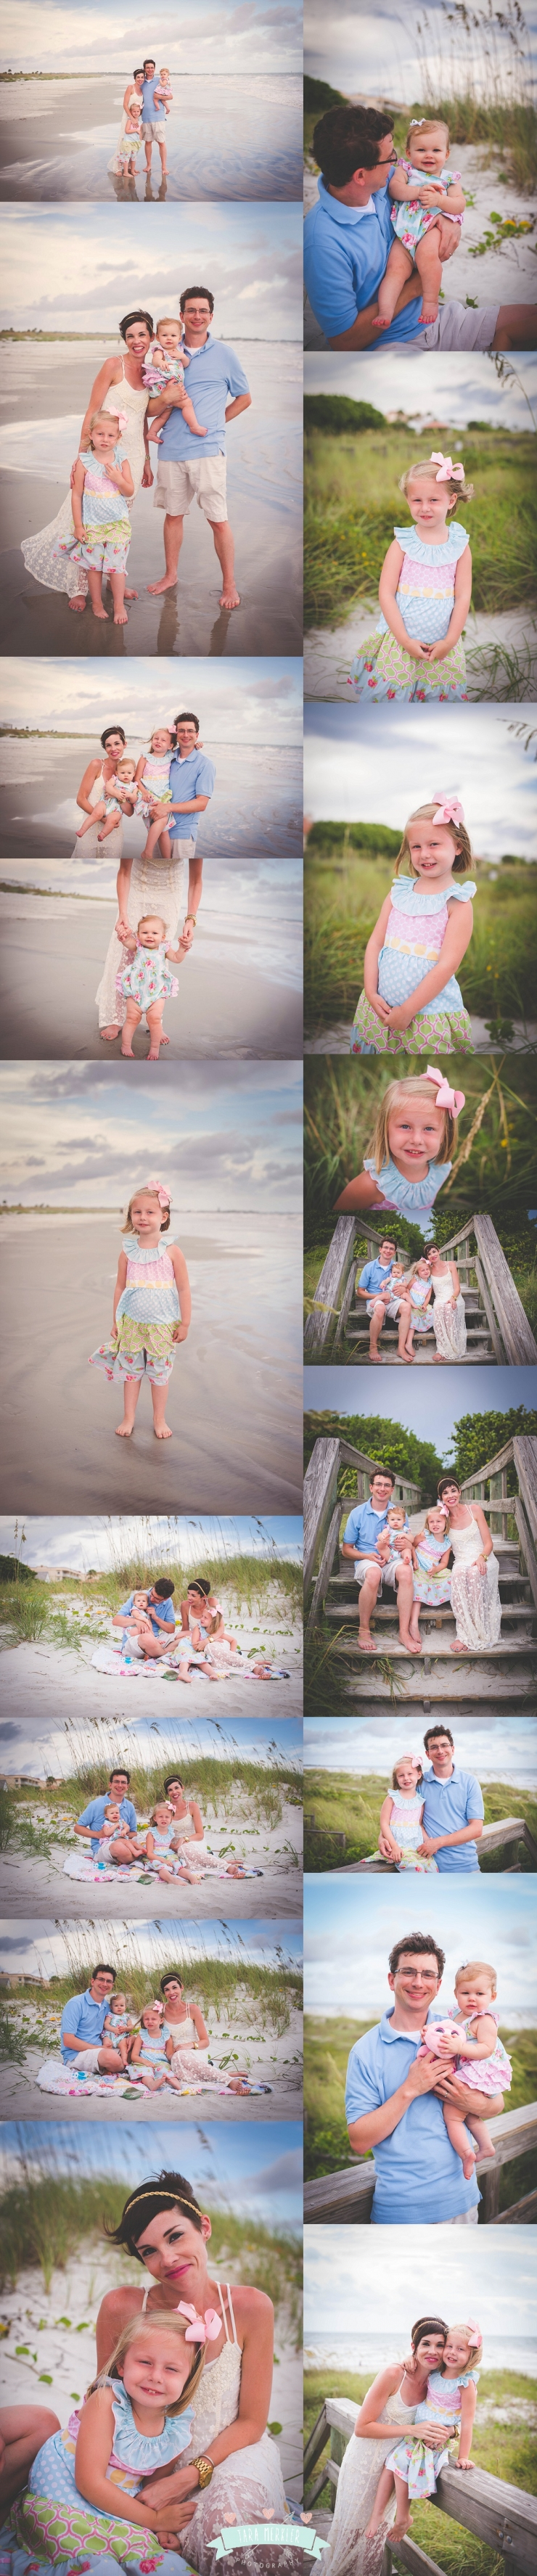 Watkins Famliy Beach Session Tara Merkler Photography Orlando, Florida Family Photography_0001.jpg